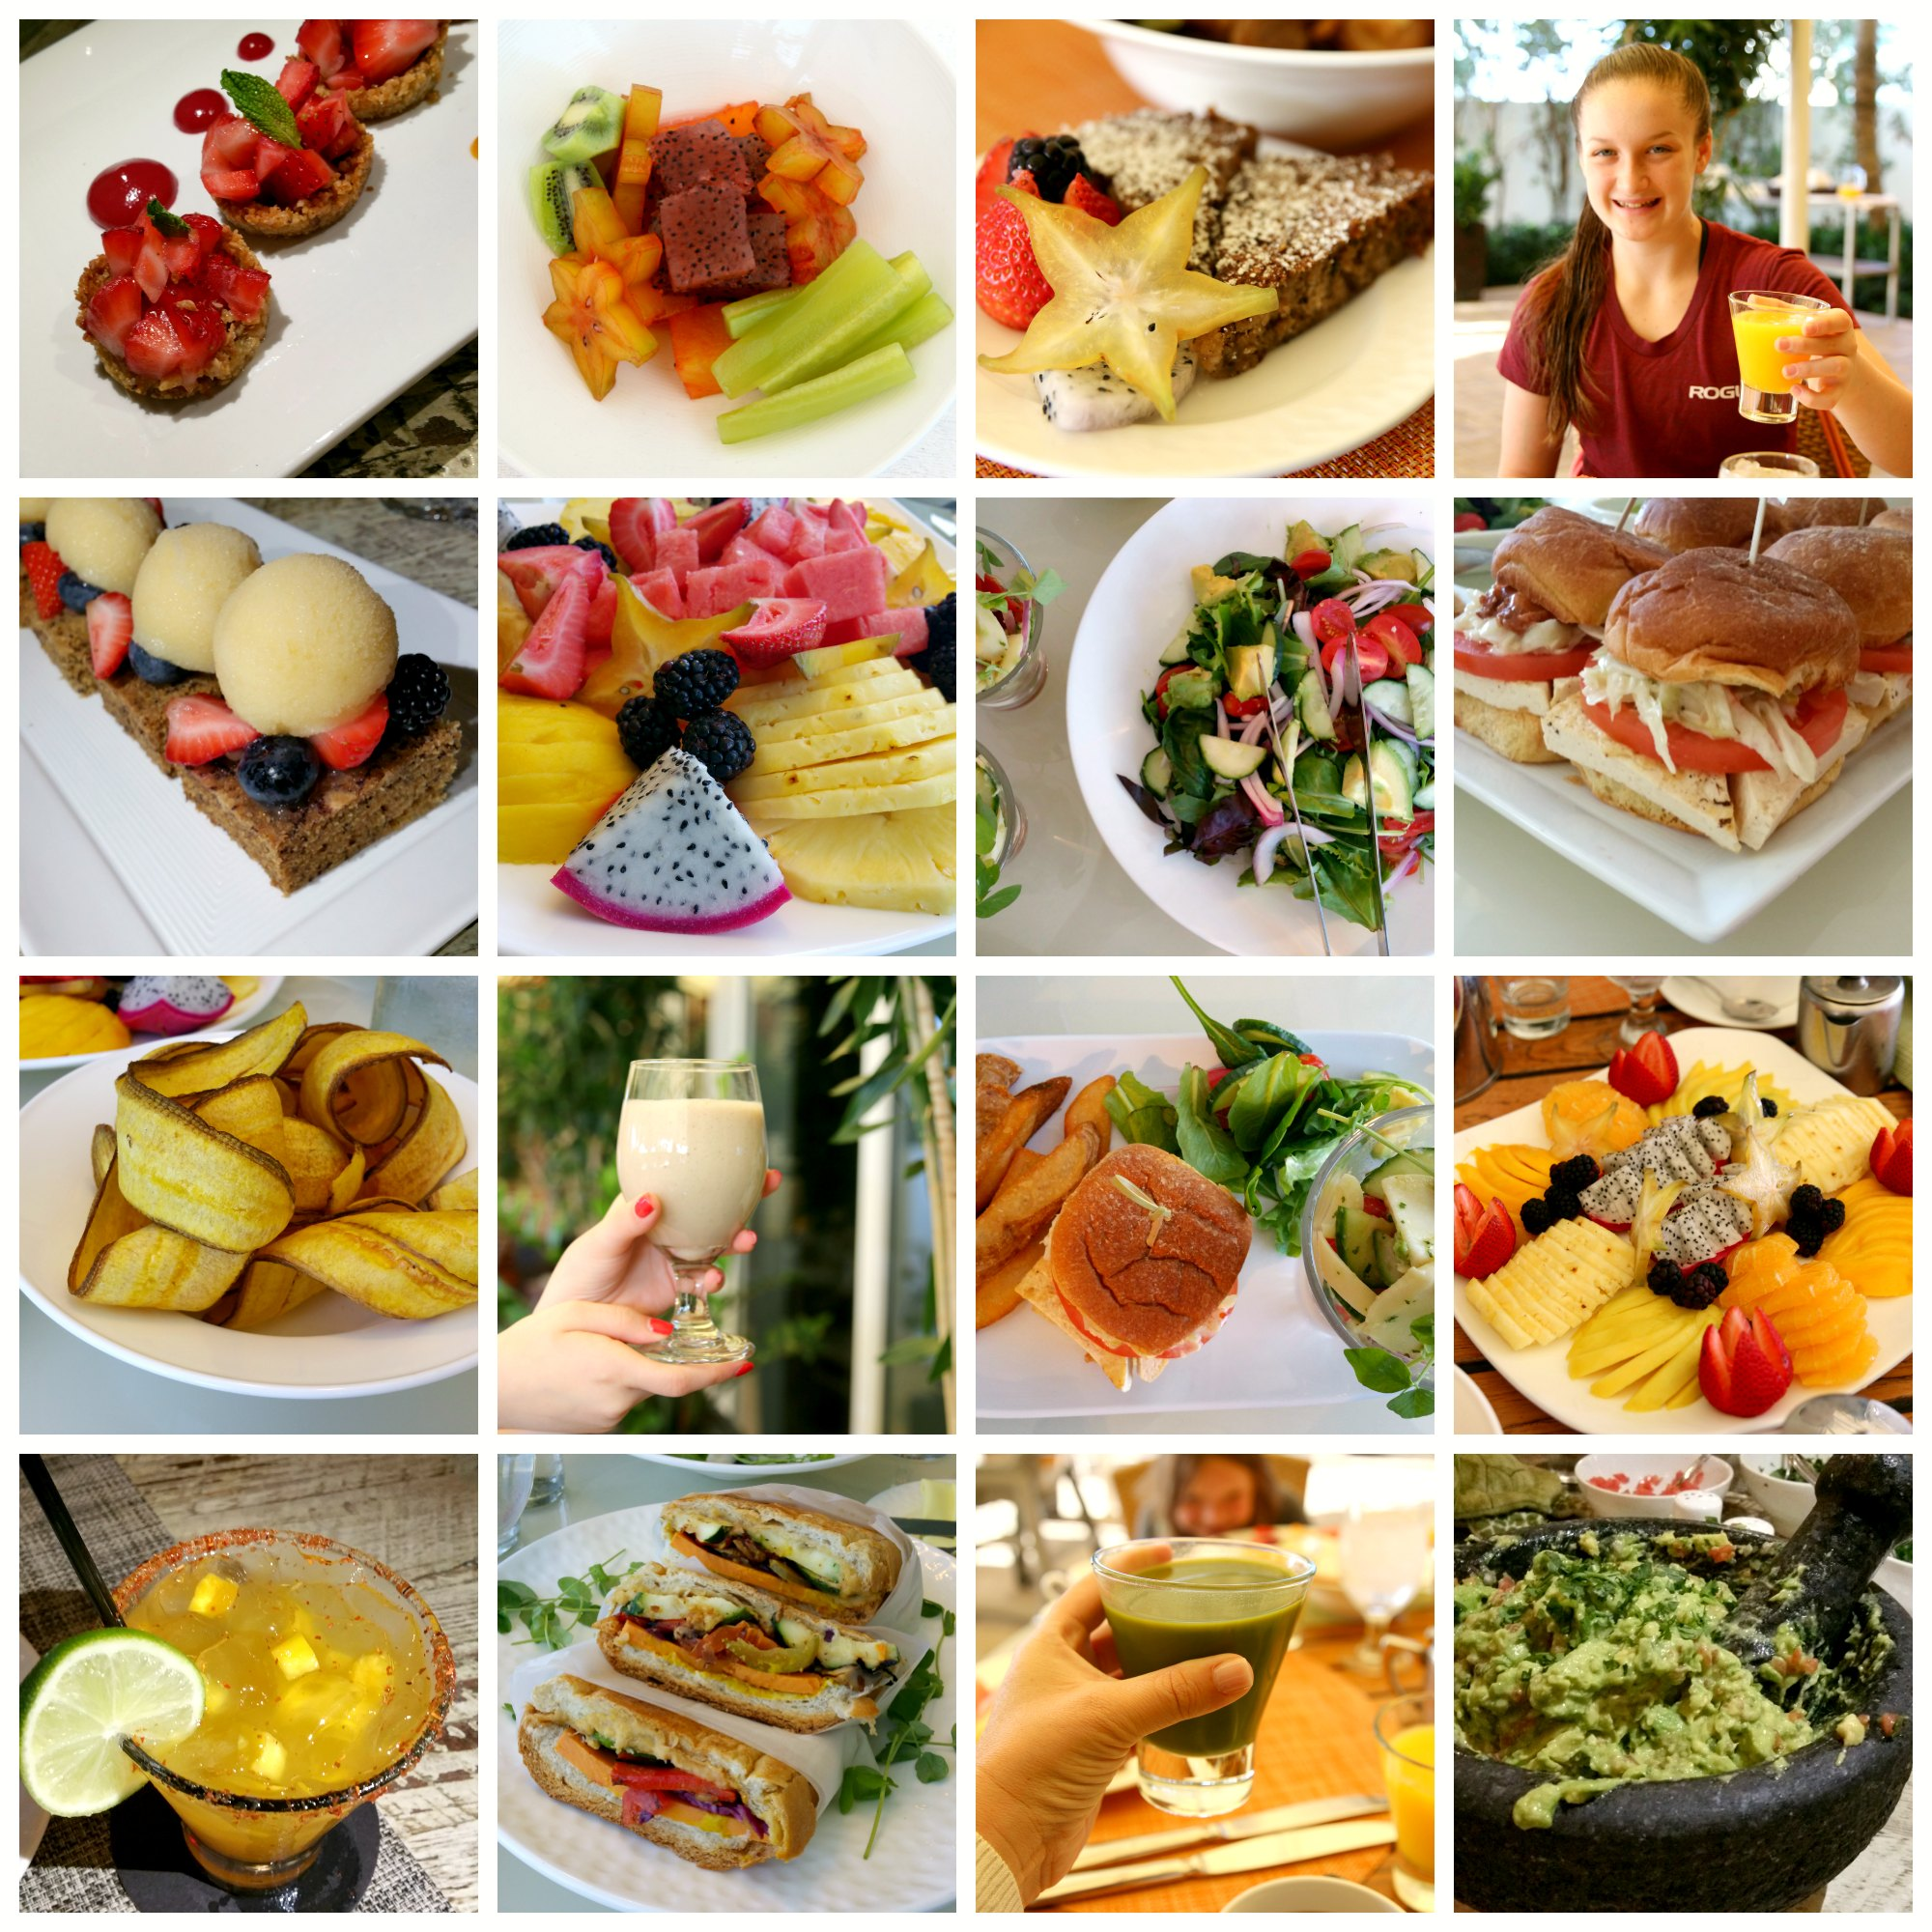 Fresh and delicious food at Trump Miami International Beach Resort